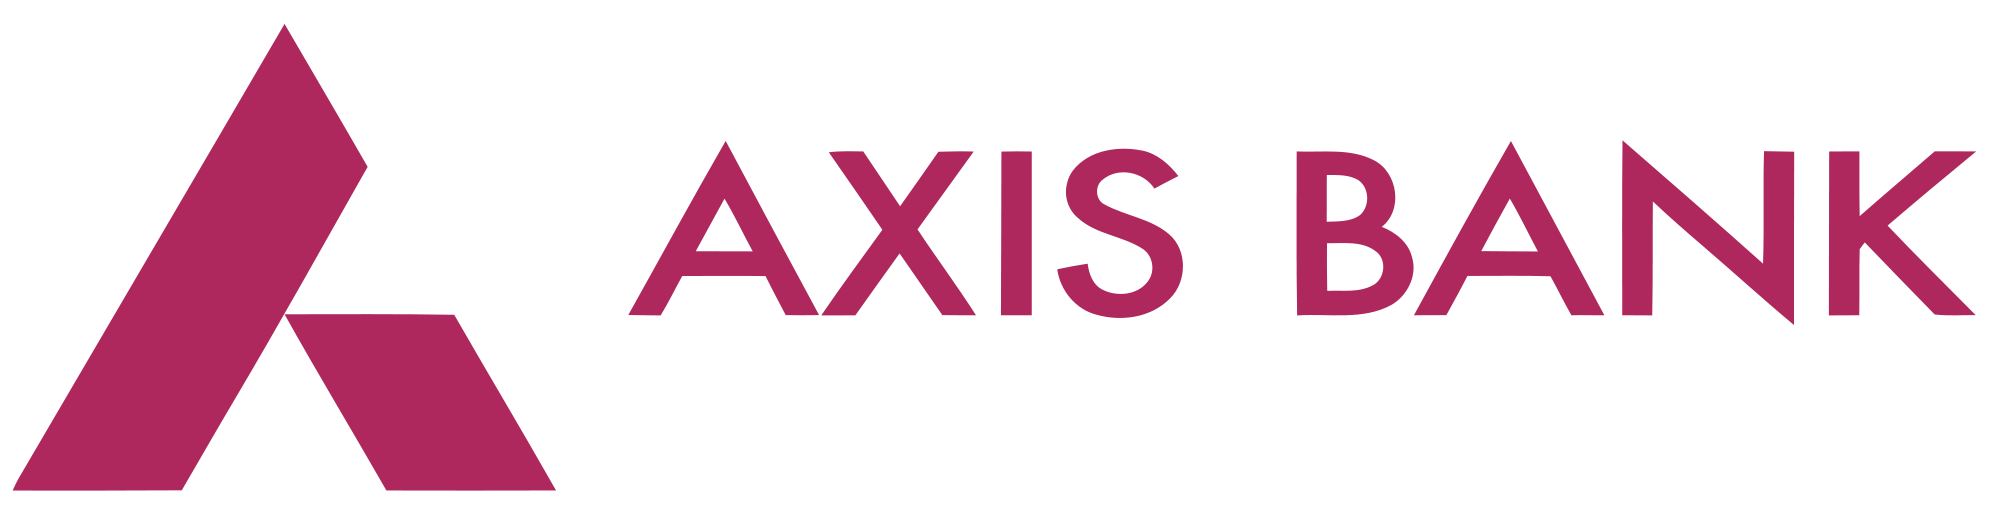 Axis Bank : Massive Risk Management and Report.